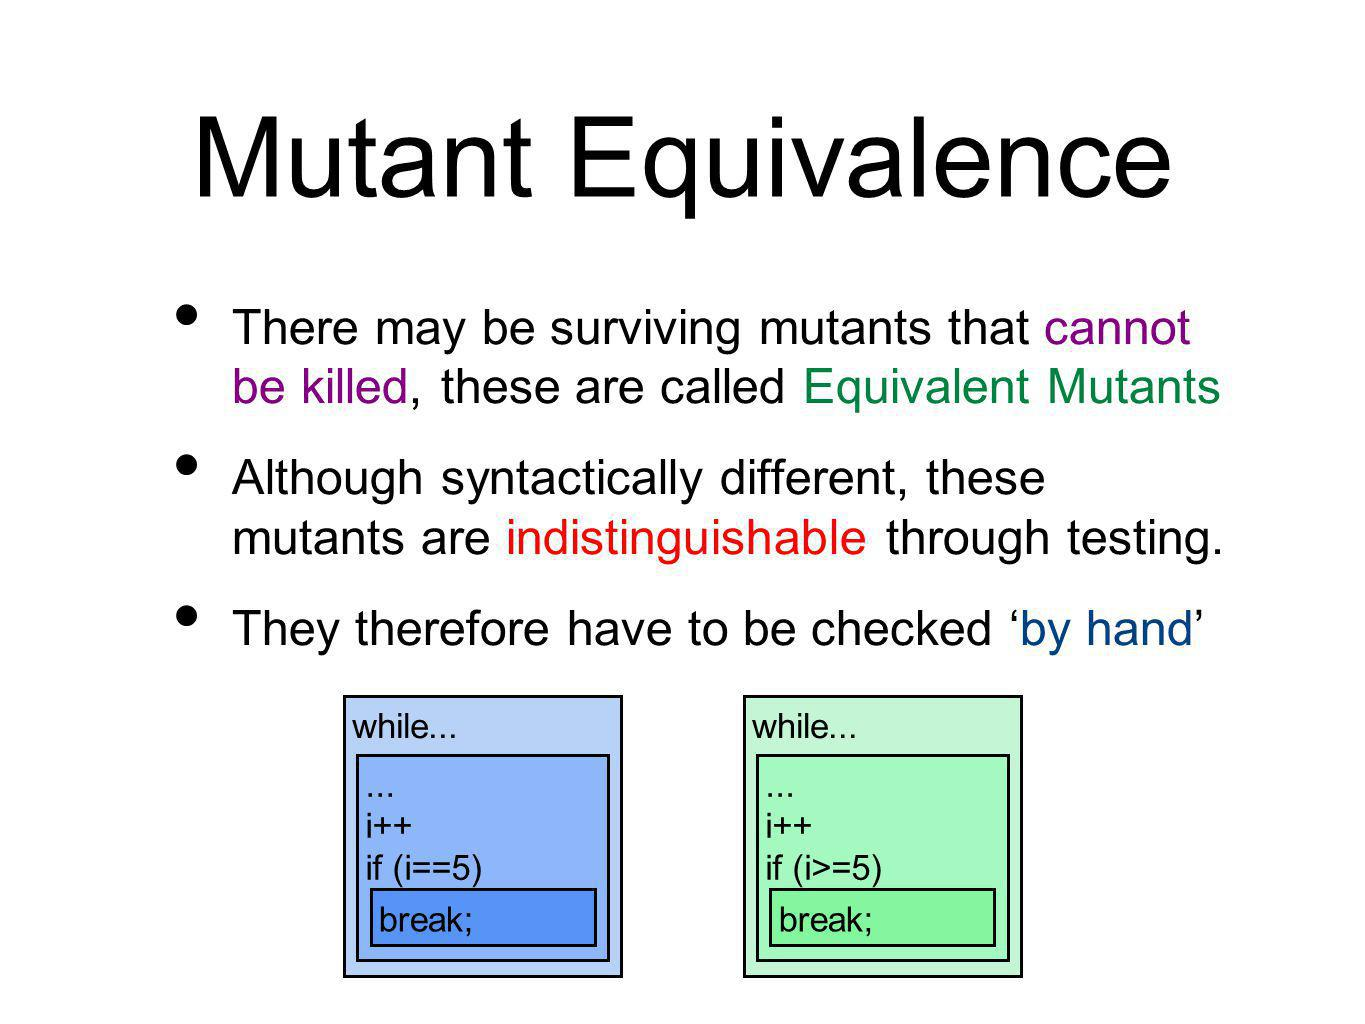 Mutant Equivalence There may be surviving mutants that cannot be killed, these are called Equivalent Mutants Although syntactically different, these mutants are indistinguishable through testing.